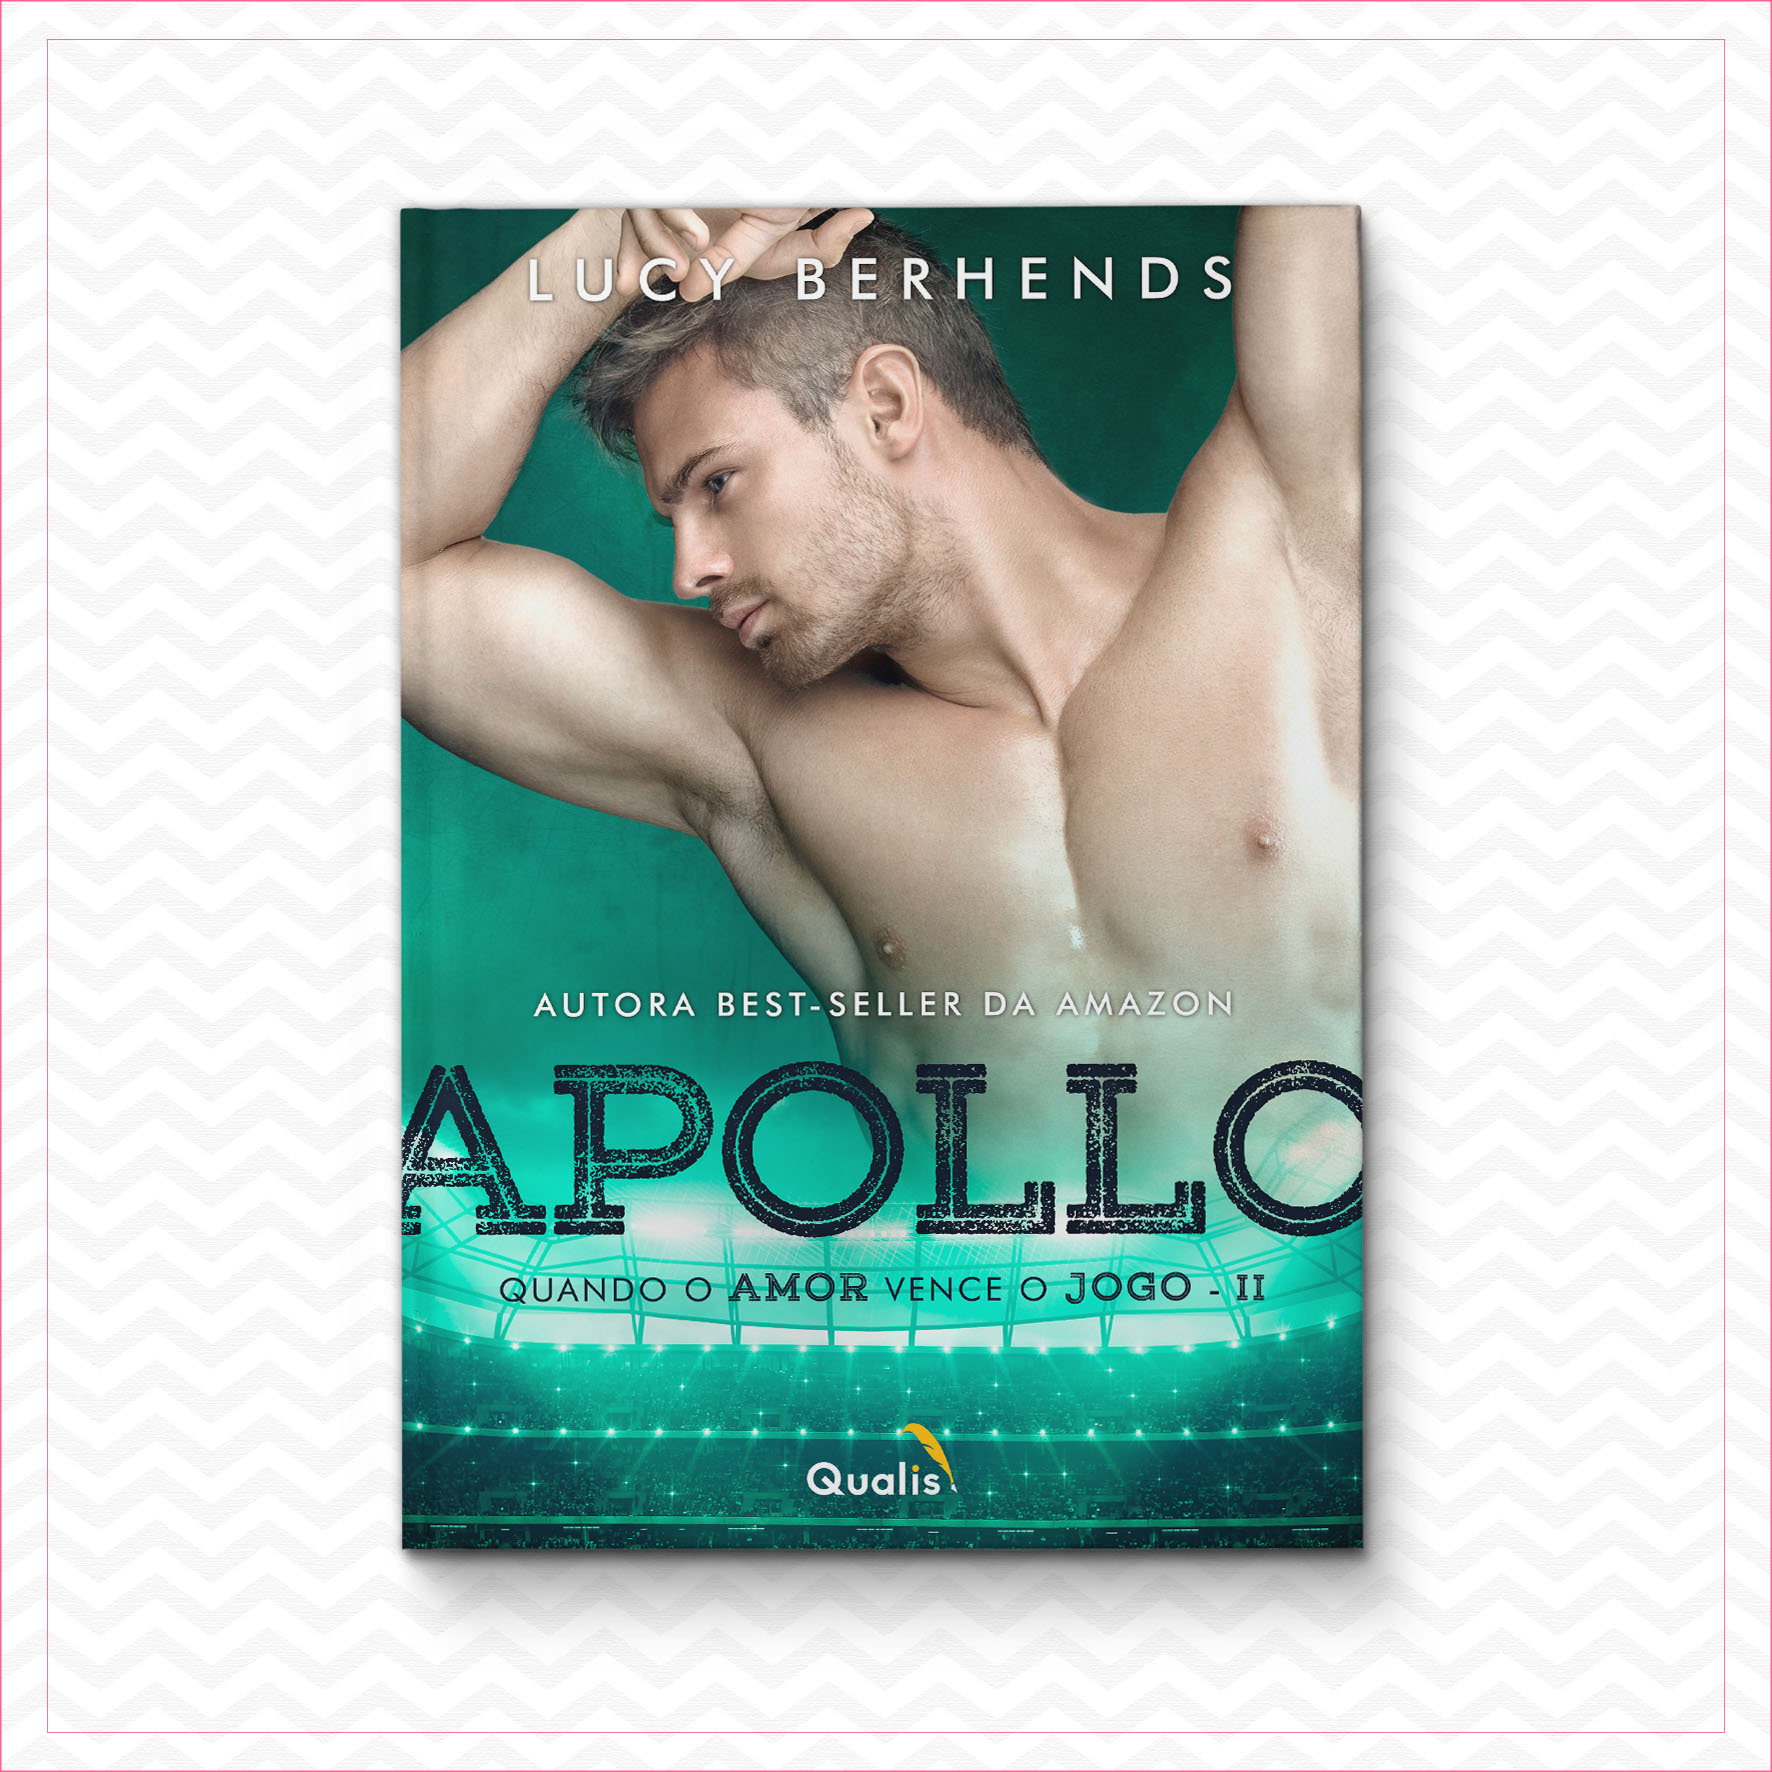 Apolo II – Lucy Berhends